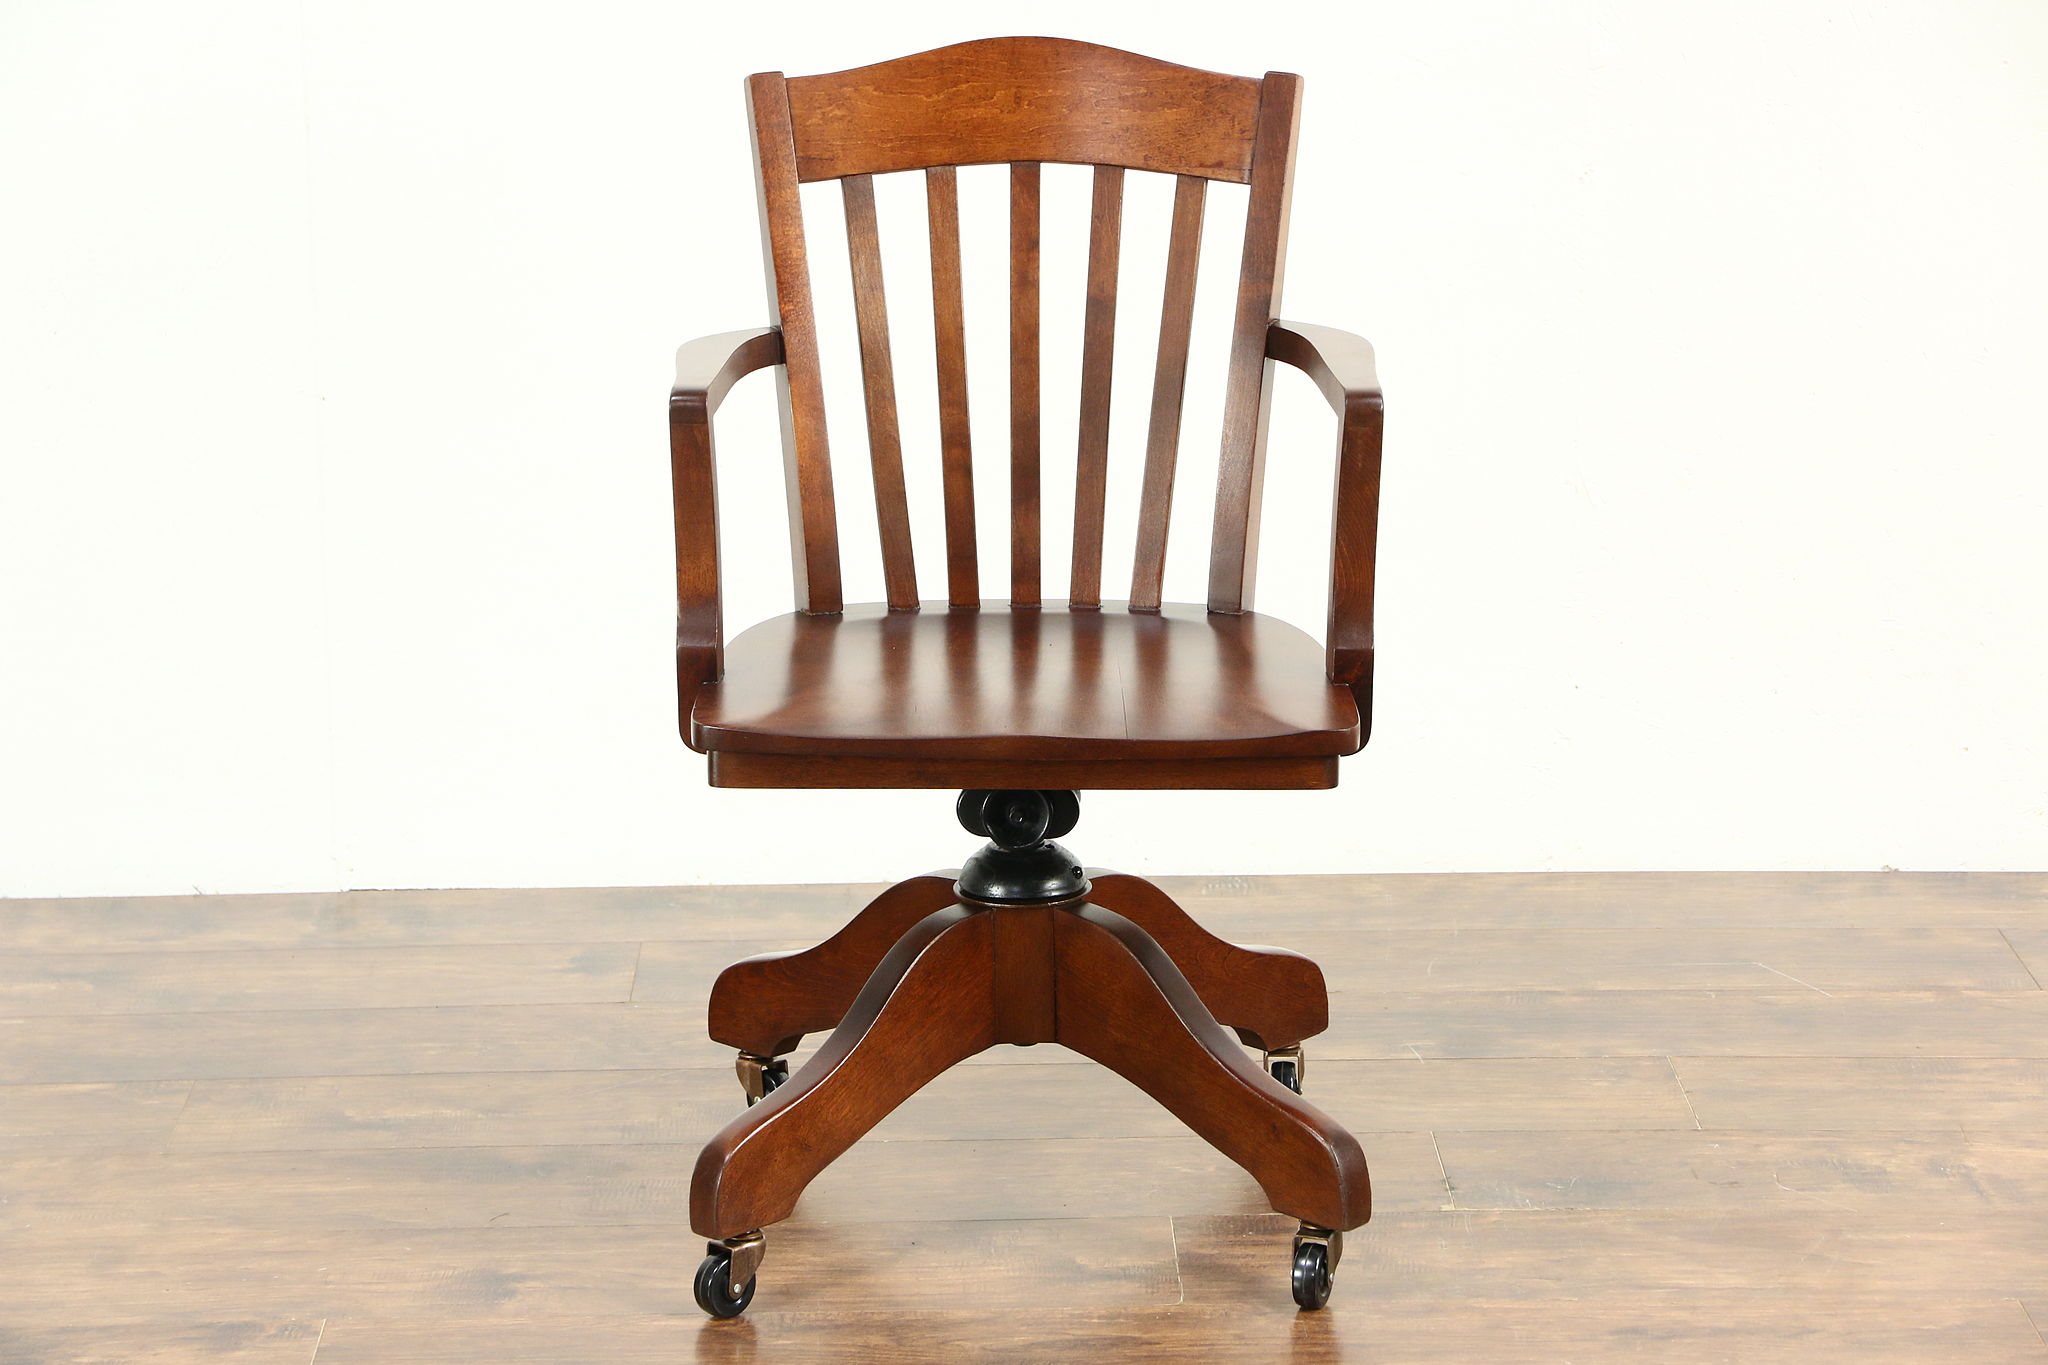 Magnificent Maple Swivel 1920 Antique Adjustable Library Or Office Desk Chair Uwap Interior Chair Design Uwaporg